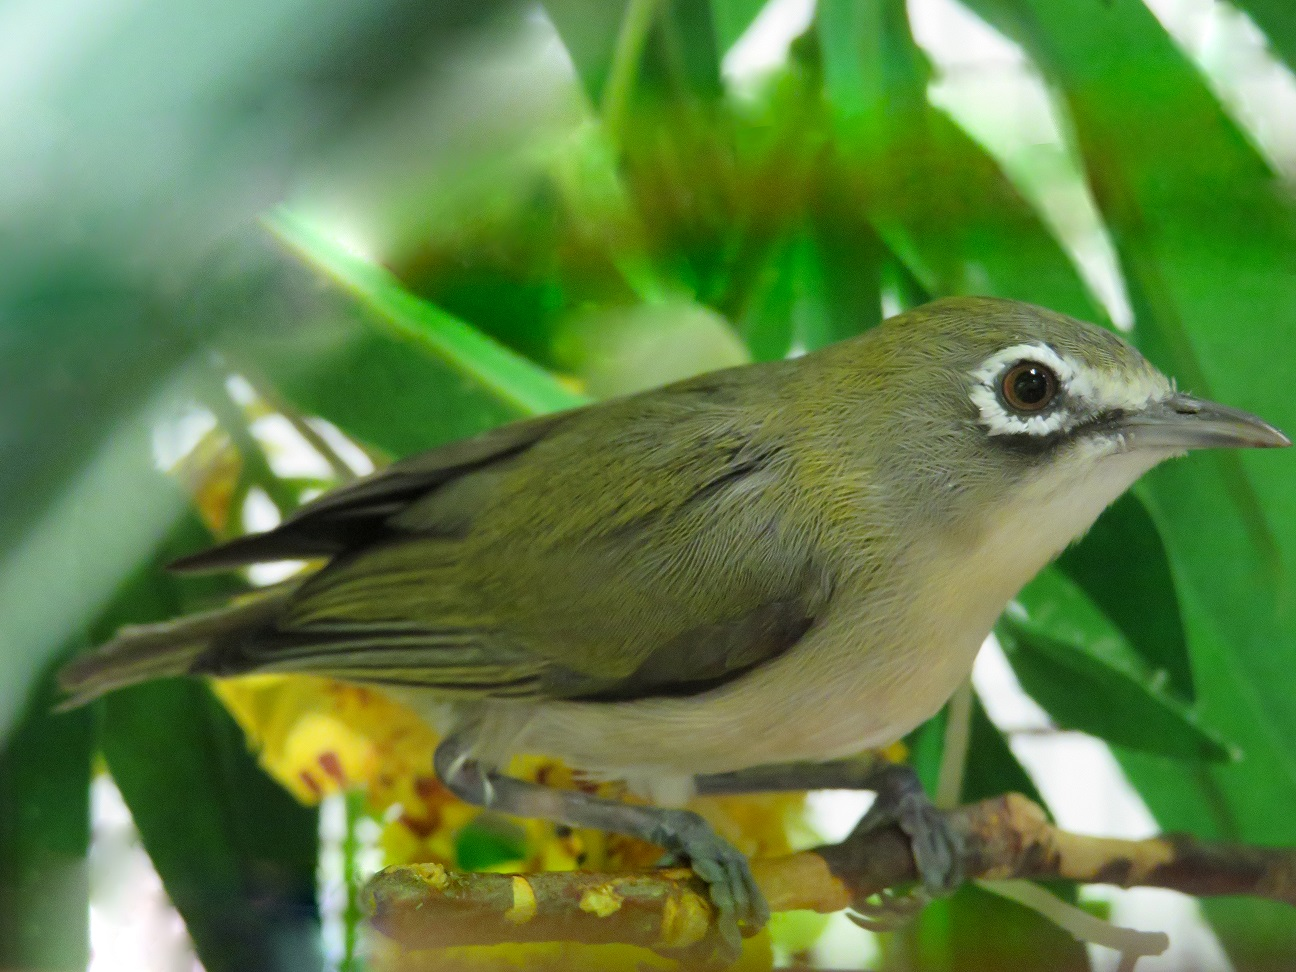 A Bridled white-eye perched on a tree branch